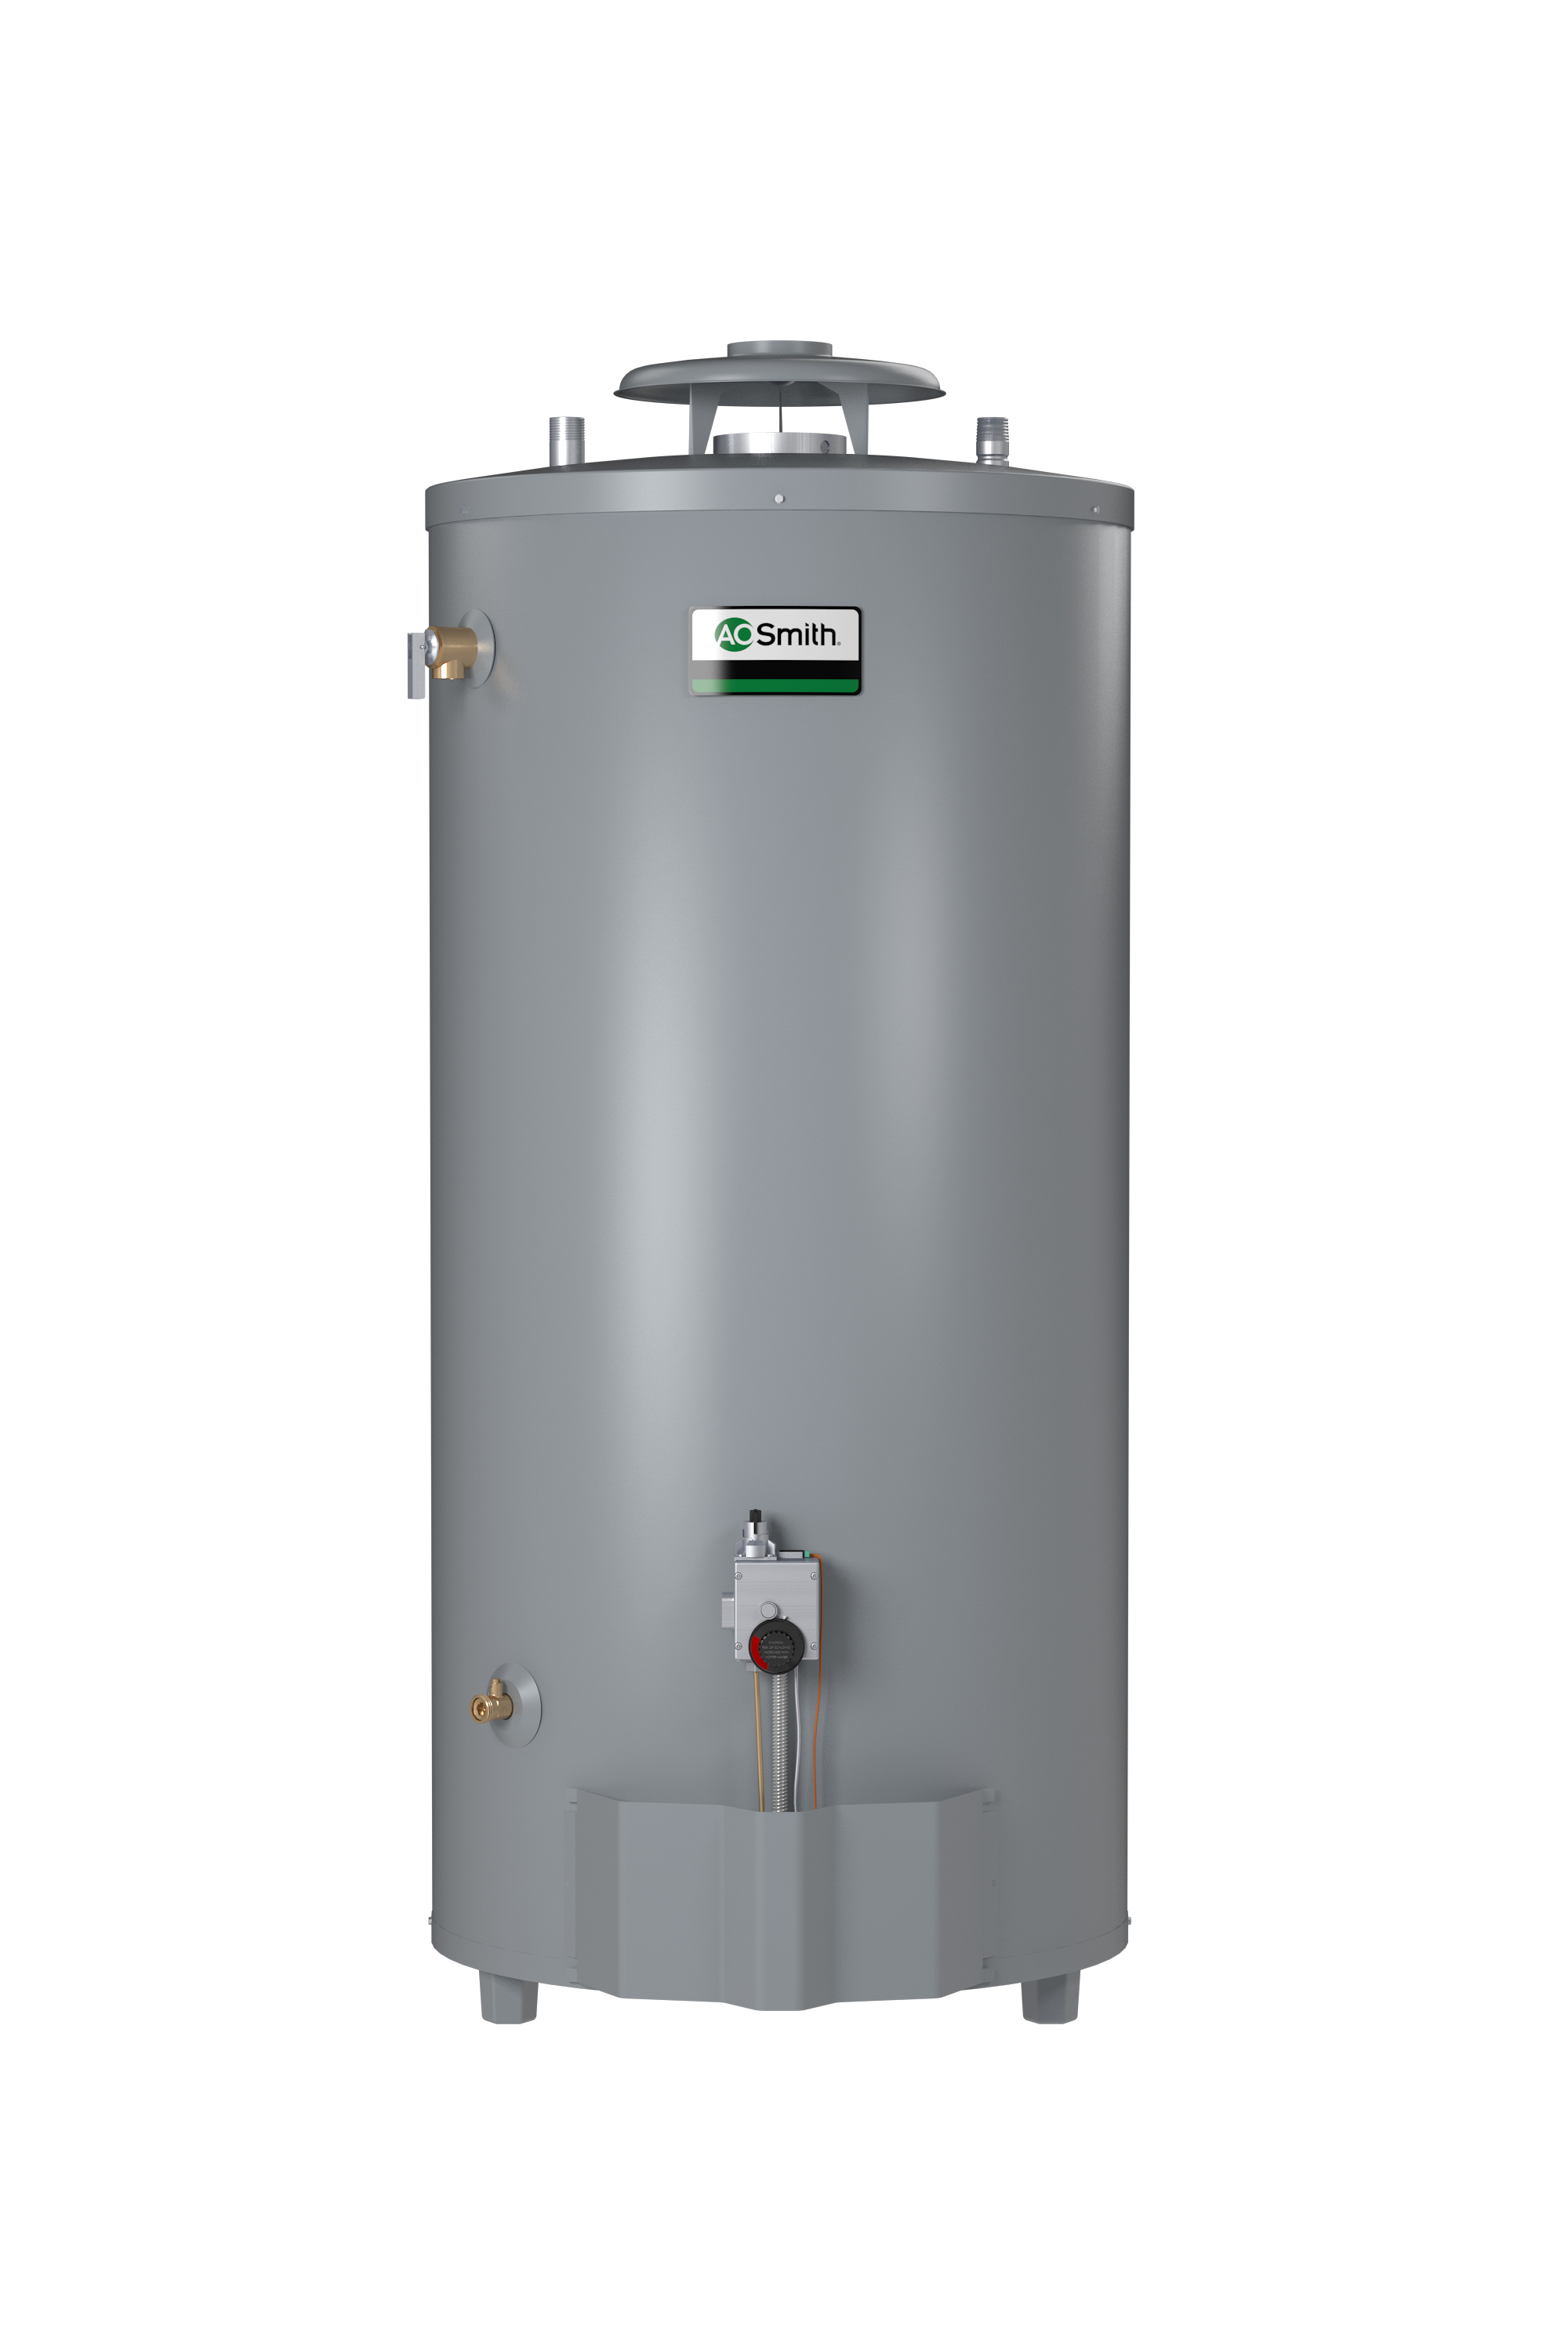 "AO SMITH BT-100: 98-GALLON, 75,100 BTU,  4"" VENT, SINGLE FLUE, NATURAL GAS WATER HEATER (NOT RECOMMENDED FOR 180 DEGREE SANITIZING), CONSERVATIONIST"